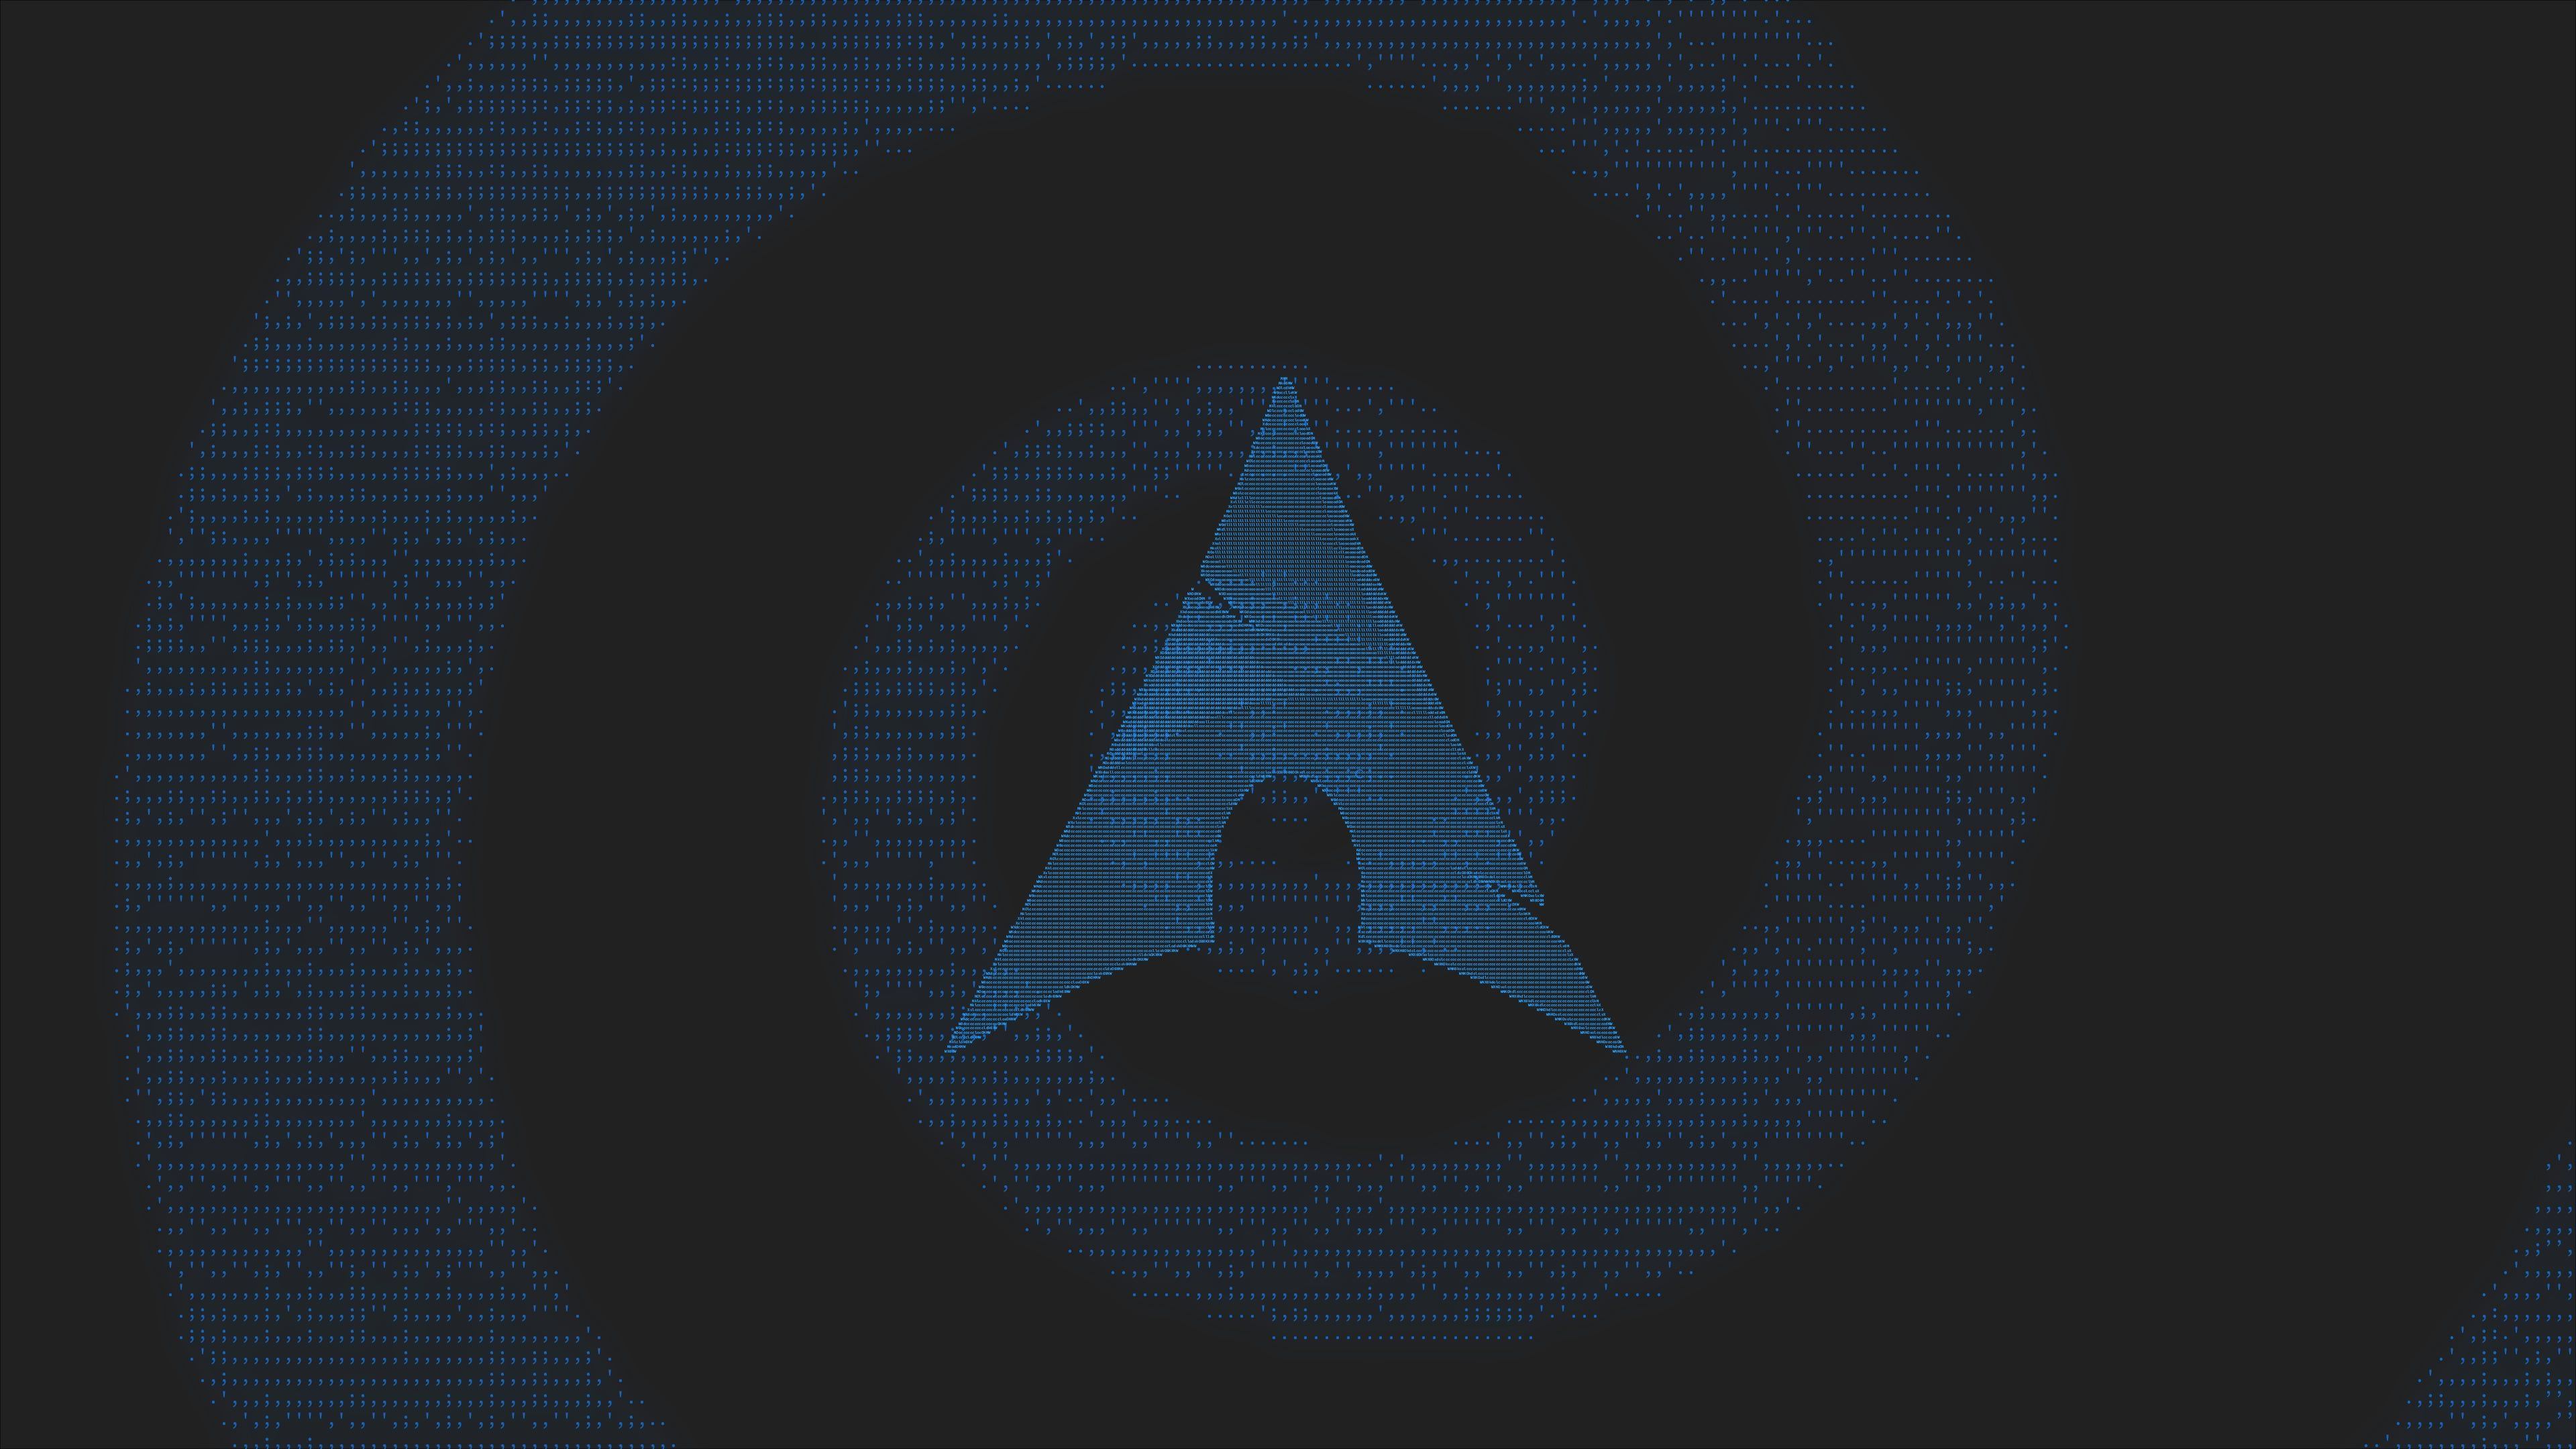 Arch Linux Minimalism 4k | The best wallpaper backgrounds